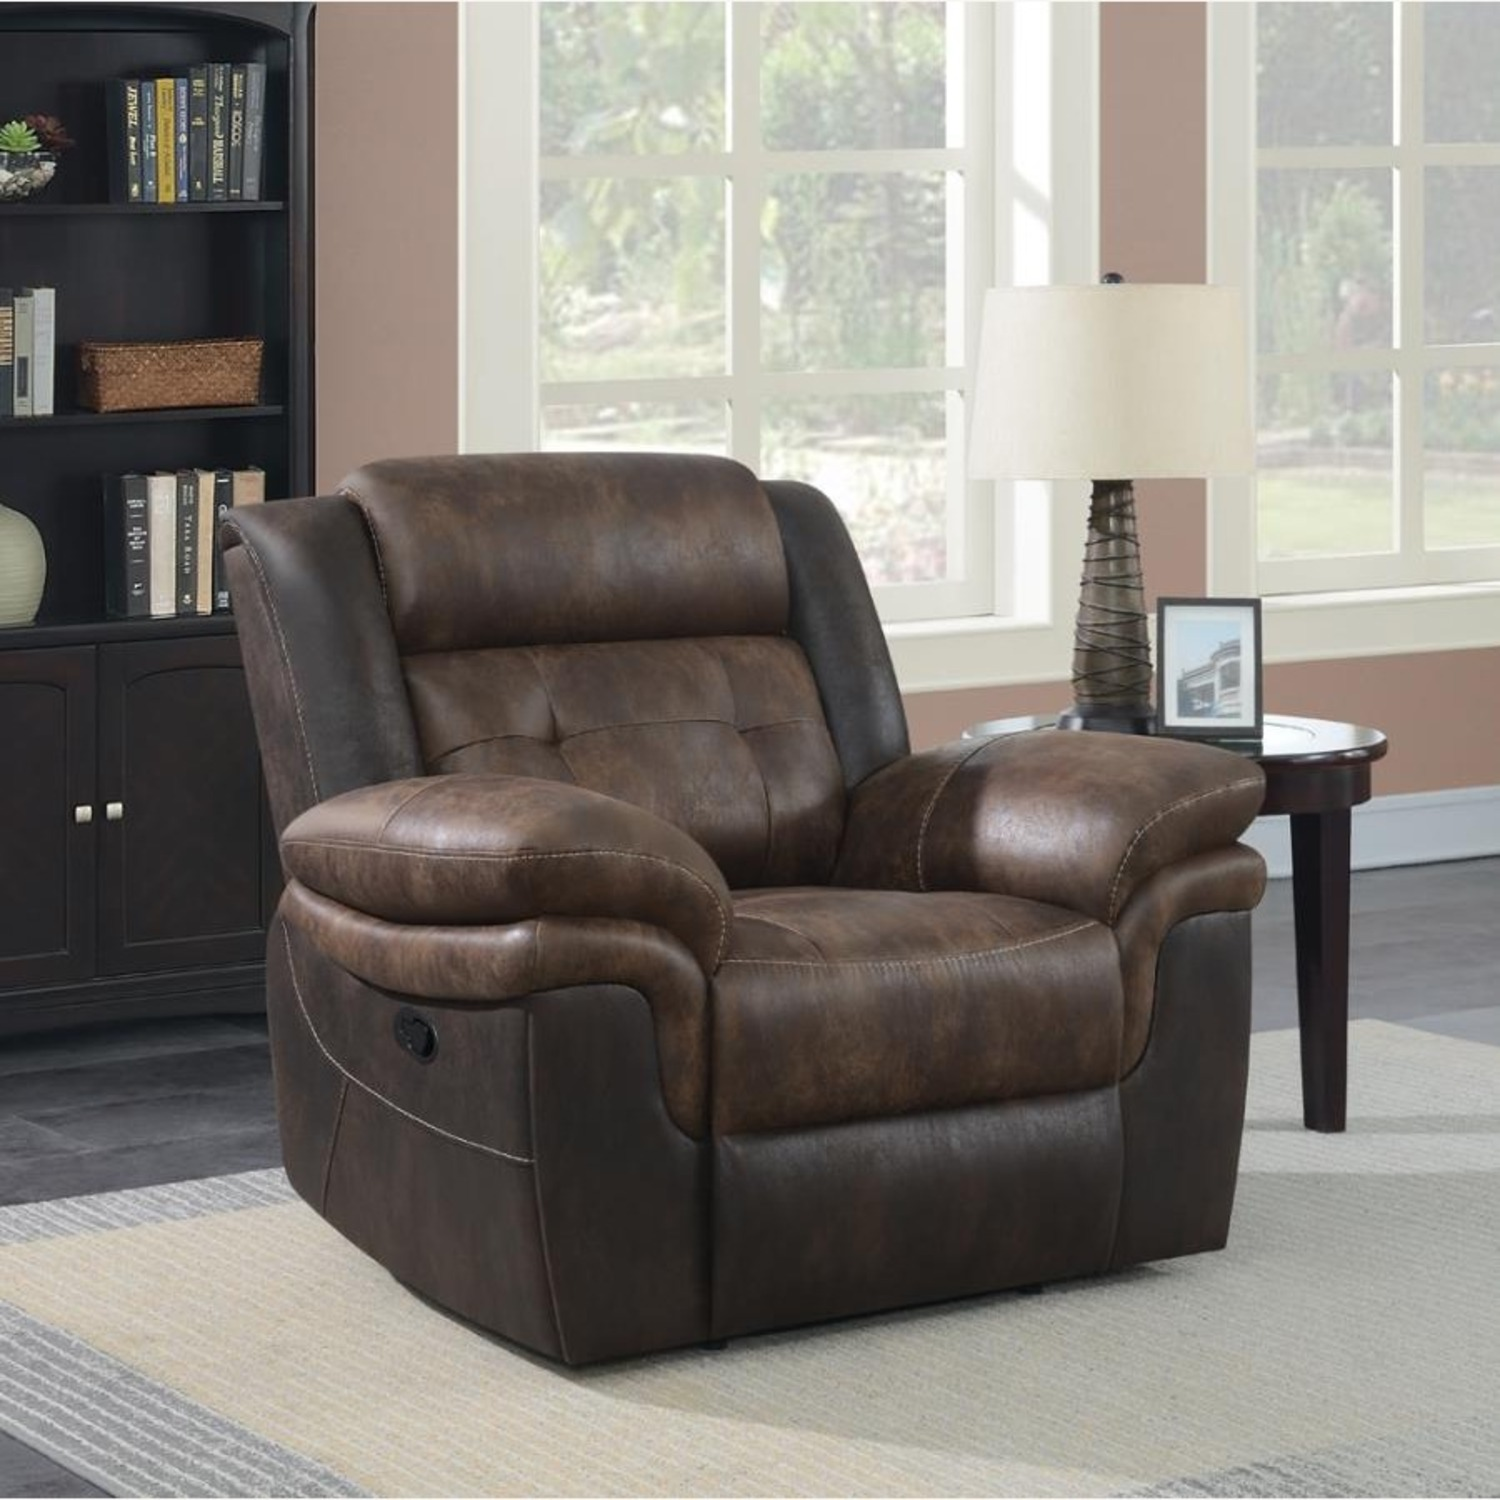 Recliner In Chocolate & Dark Brown Upholstery - image-7